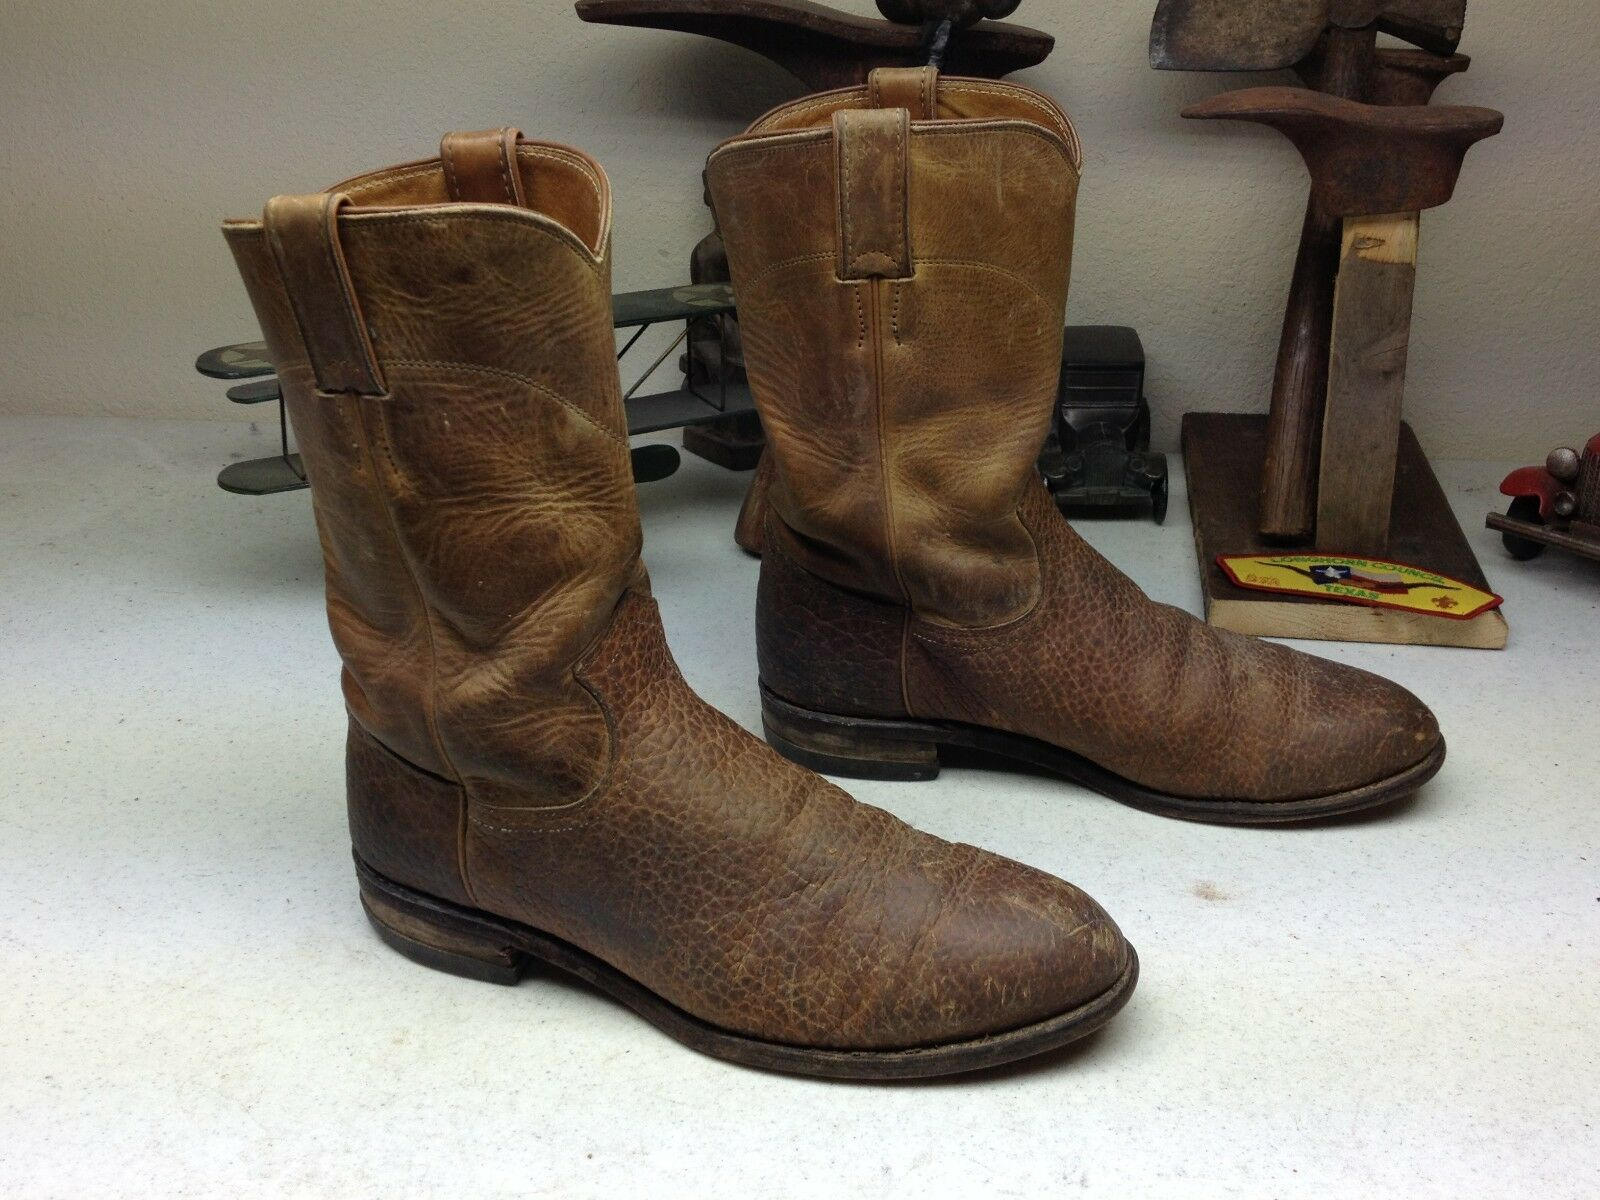 VINTAGE DISTRESSED MADE IN USA WORK JUSTIN BROWN LEATHER ENGINEER WORK USA BOOTS 8.5D b8c636